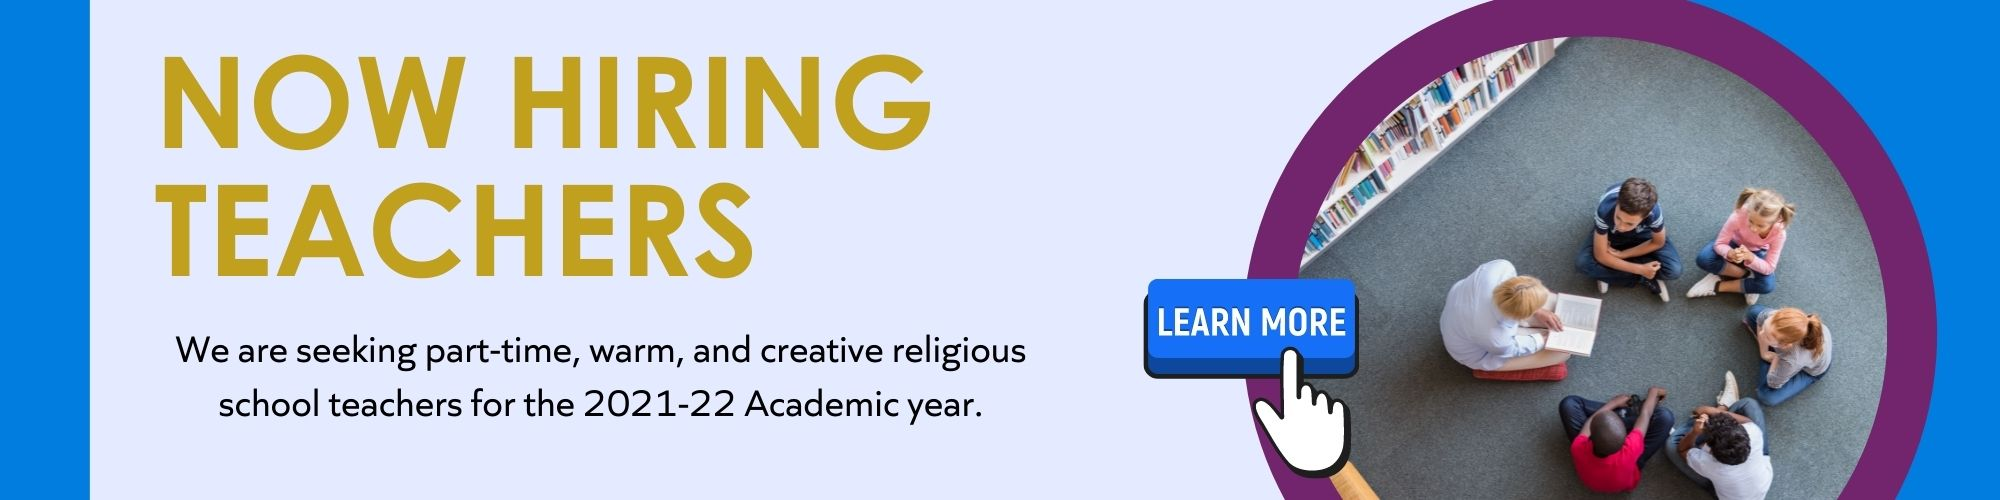 """<a href=""""https://www.adath-israel.org/careers.html""""                                     target=""""_blank"""">                                                                 <span class=""""slider_title"""">                                     Now Hiring -Part-time Teachers                                </span>                                                                 </a>                                                                                                                                                                                       <span class=""""slider_description"""">Teachers should have experience teaching Hebrew and possess proficient knowledge and the ability to teach mitzvot, Torah, history, and holidays using experiential and engaging classroom techniques.</span>                                                                                     <a href=""""https://www.adath-israel.org/careers.html"""" class=""""slider_link""""                             target=""""_blank"""">                             Learn more or to apply click here                            </a>"""